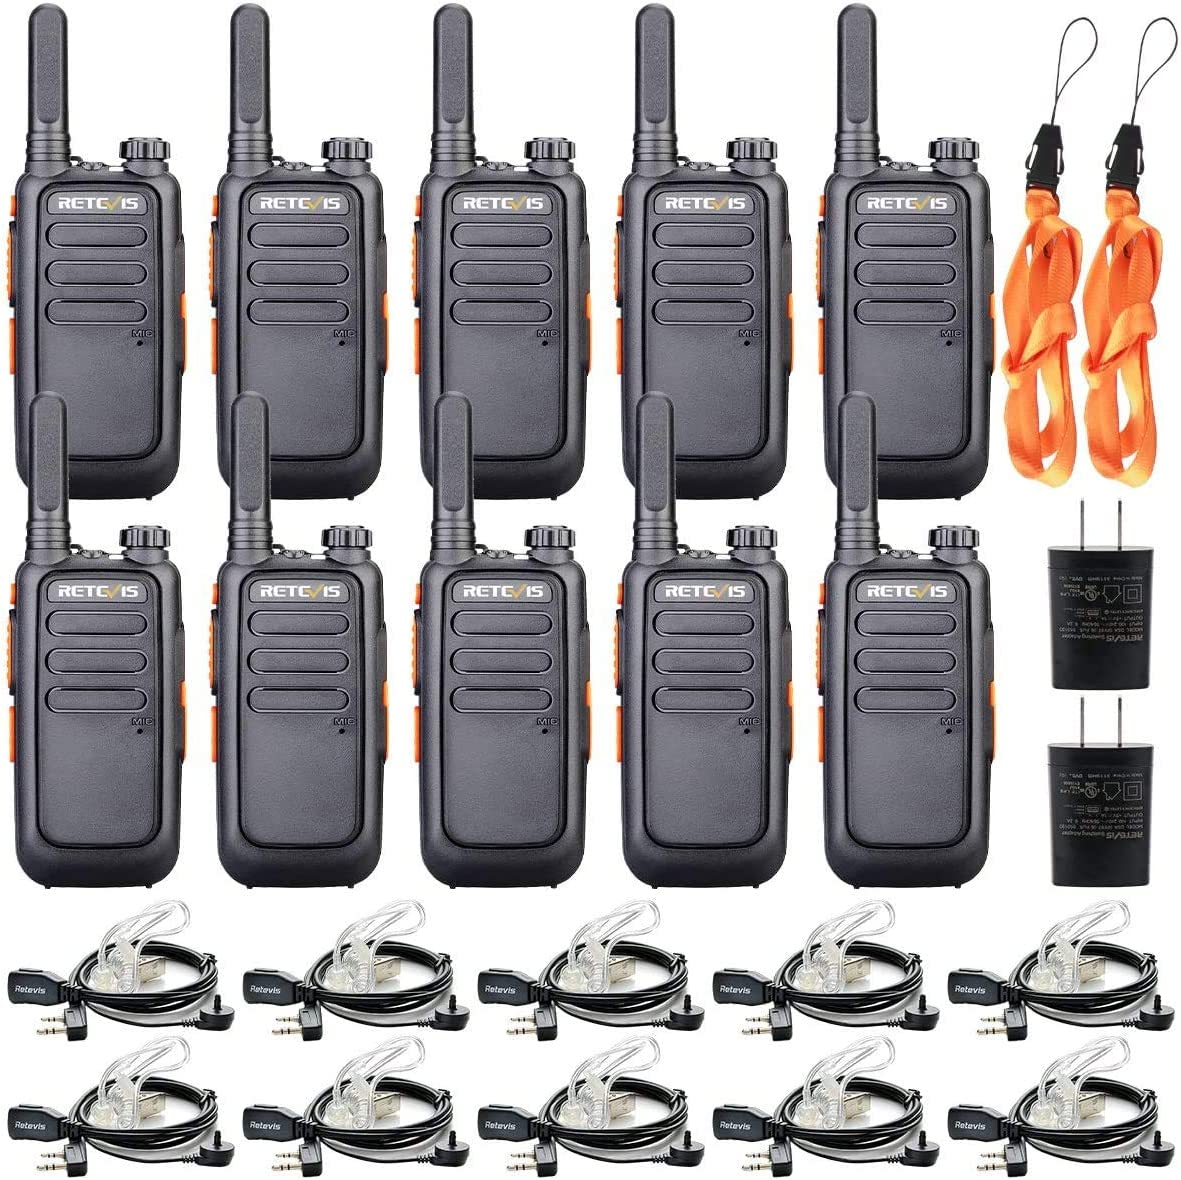 Retevis RT69 Walkie Talkies with Earpieces 10 Pack,Two-Way Radios Rechargeable,Mini Small Channel Lock VOX Flashlight,2 Way Radios Long Range